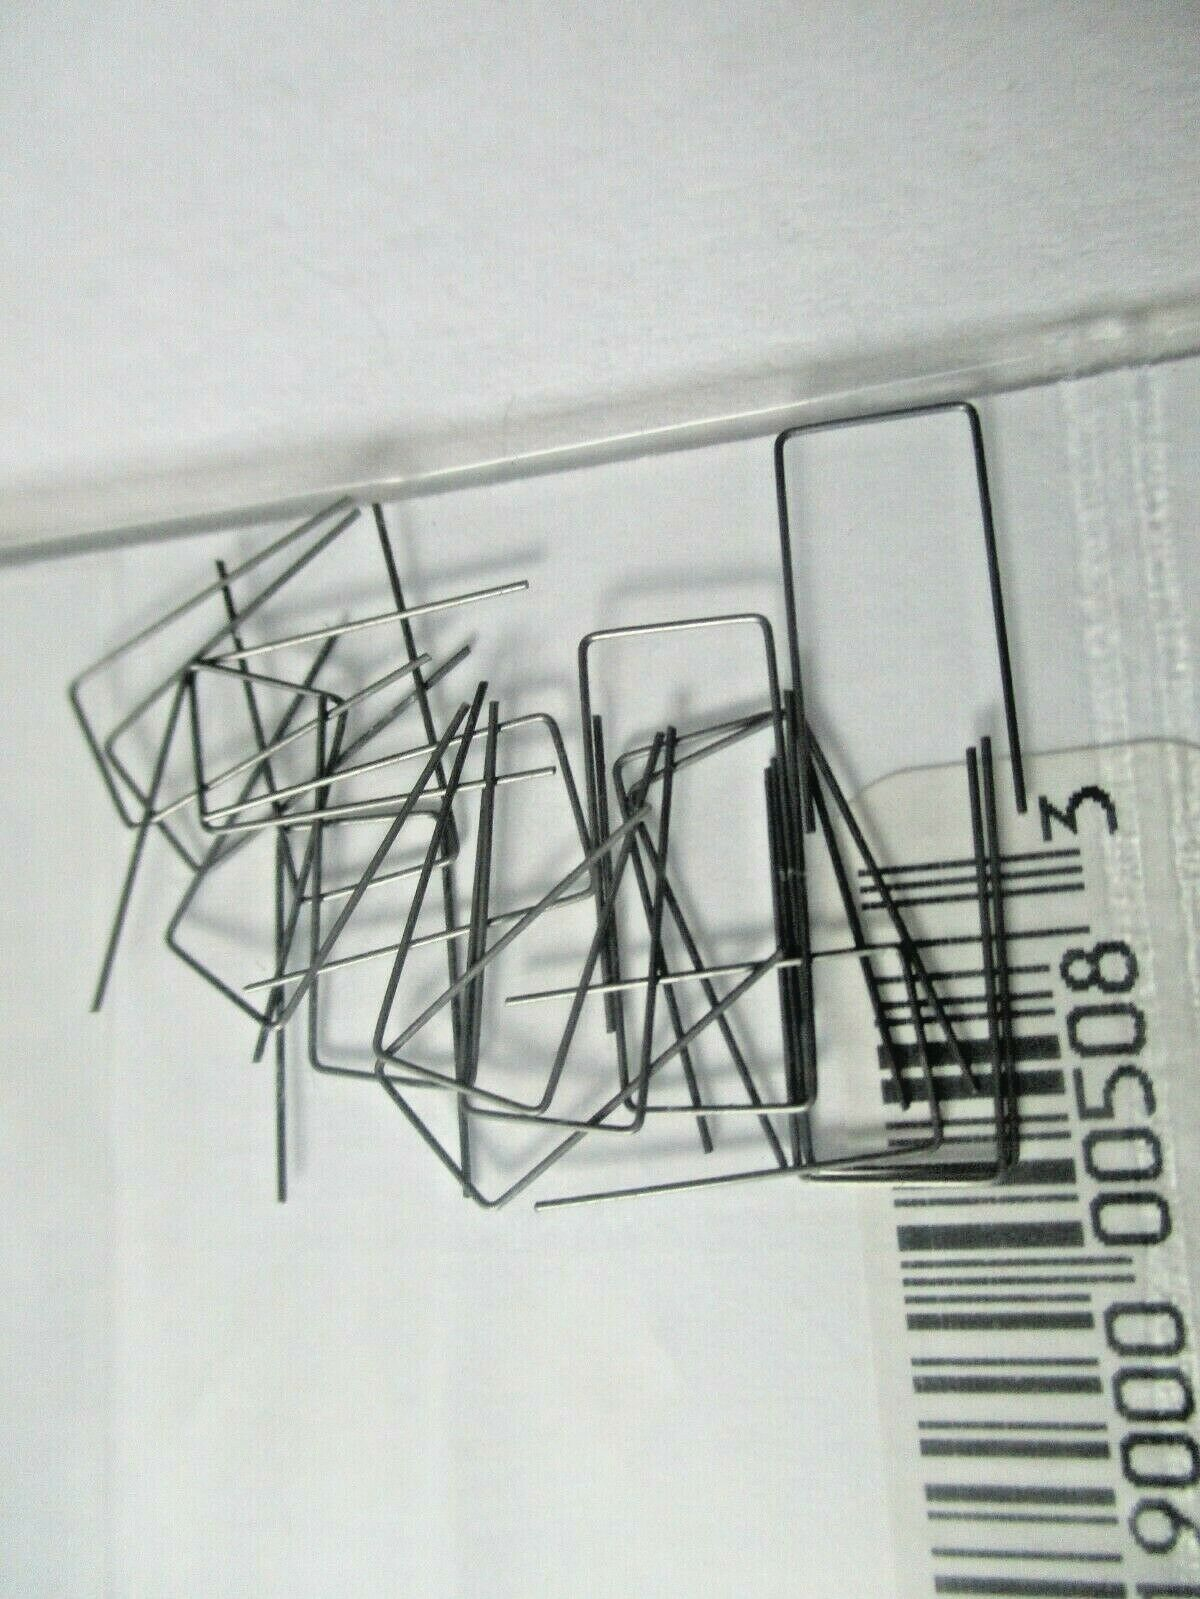 Cal Cal Scale # 190-508 Grab Iron 21 in Straight 20 Pieces .012 HO Scale